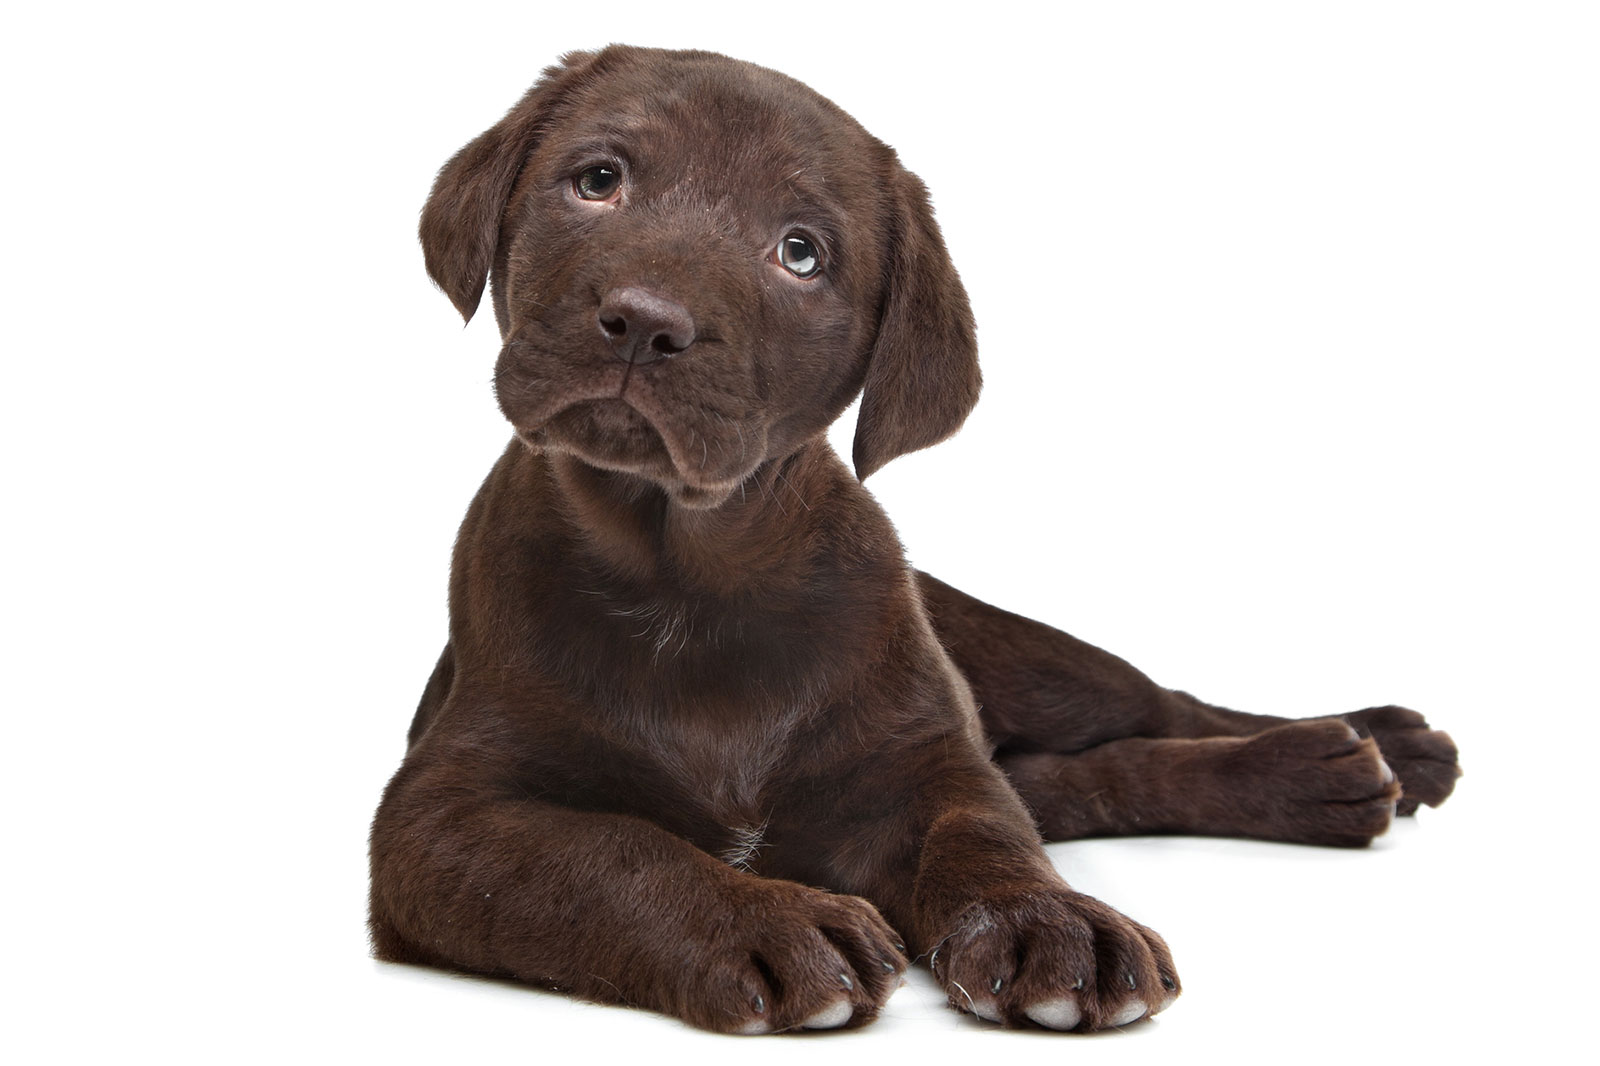 chocolate-lab-puppy.jpg